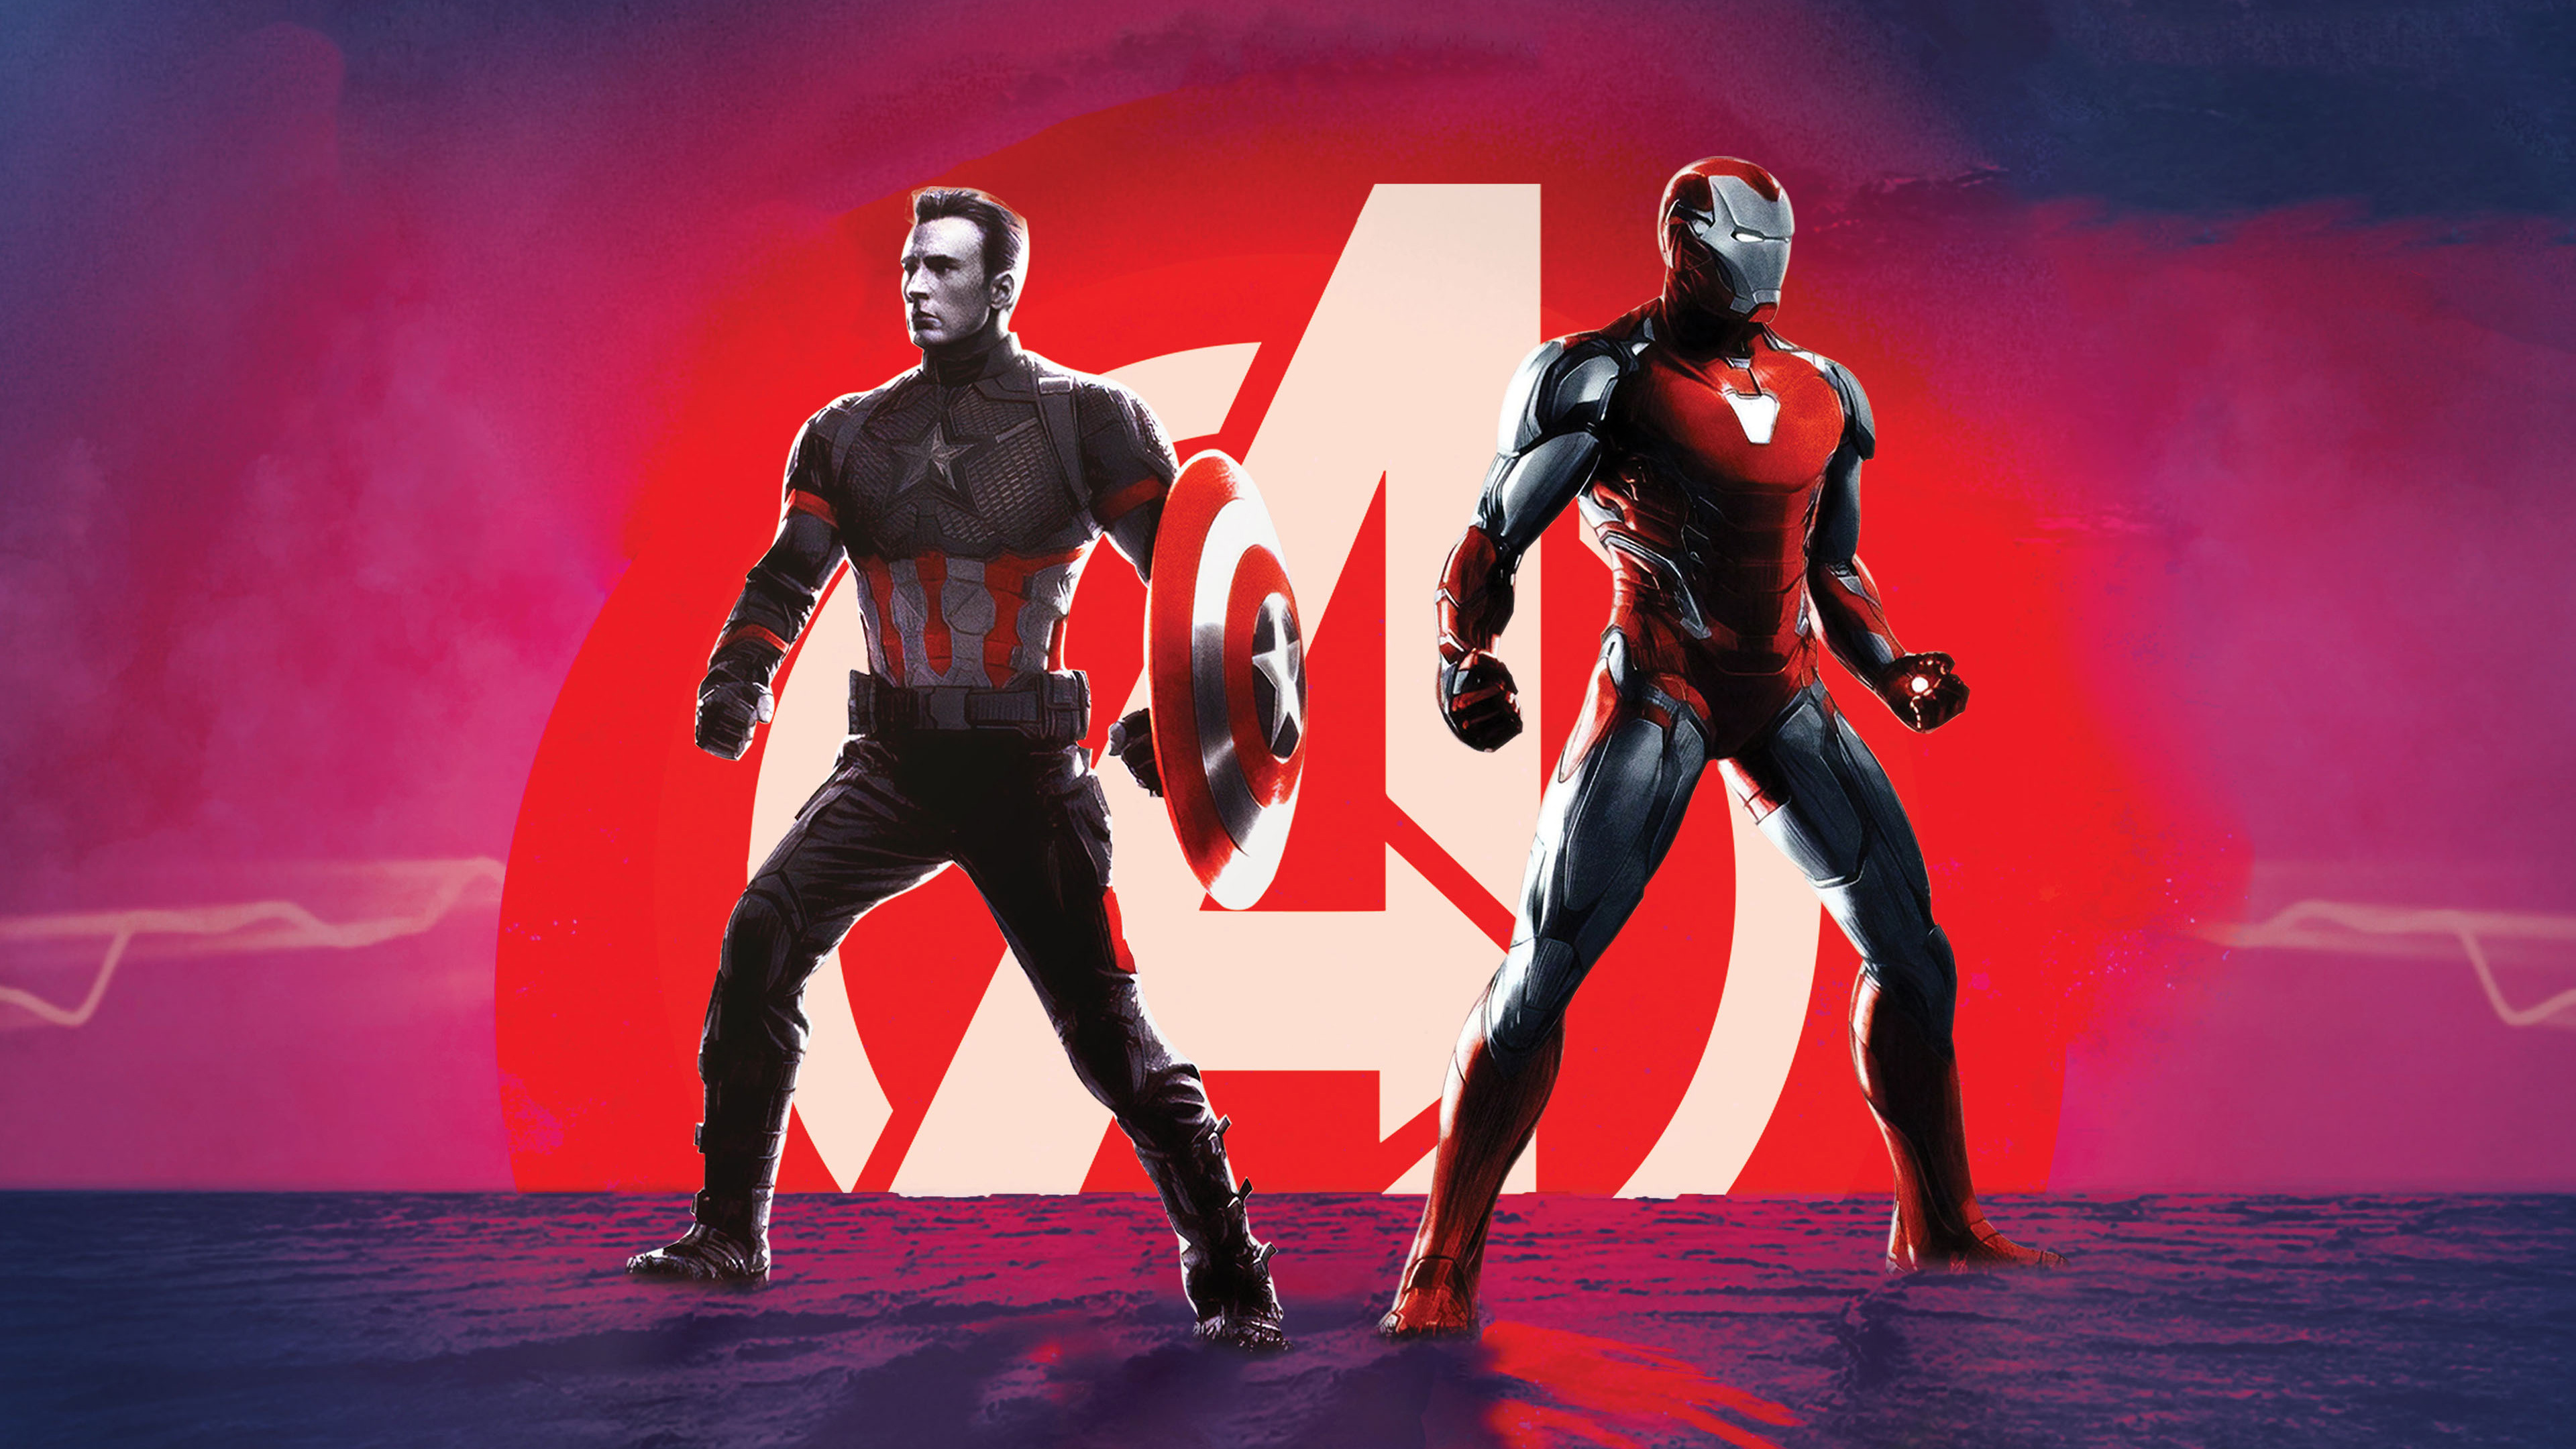 avengers endgame tony and captain america 4k 1557260304 - Avengers Endgame Tony And Captain America 4k - superheroes wallpapers, movies wallpapers, iron man wallpapers, hd-wallpapers, captain america wallpapers, behance wallpapers, avengers endgame wallpapers, 4k-wallpapers, 2019 movies wallpapers